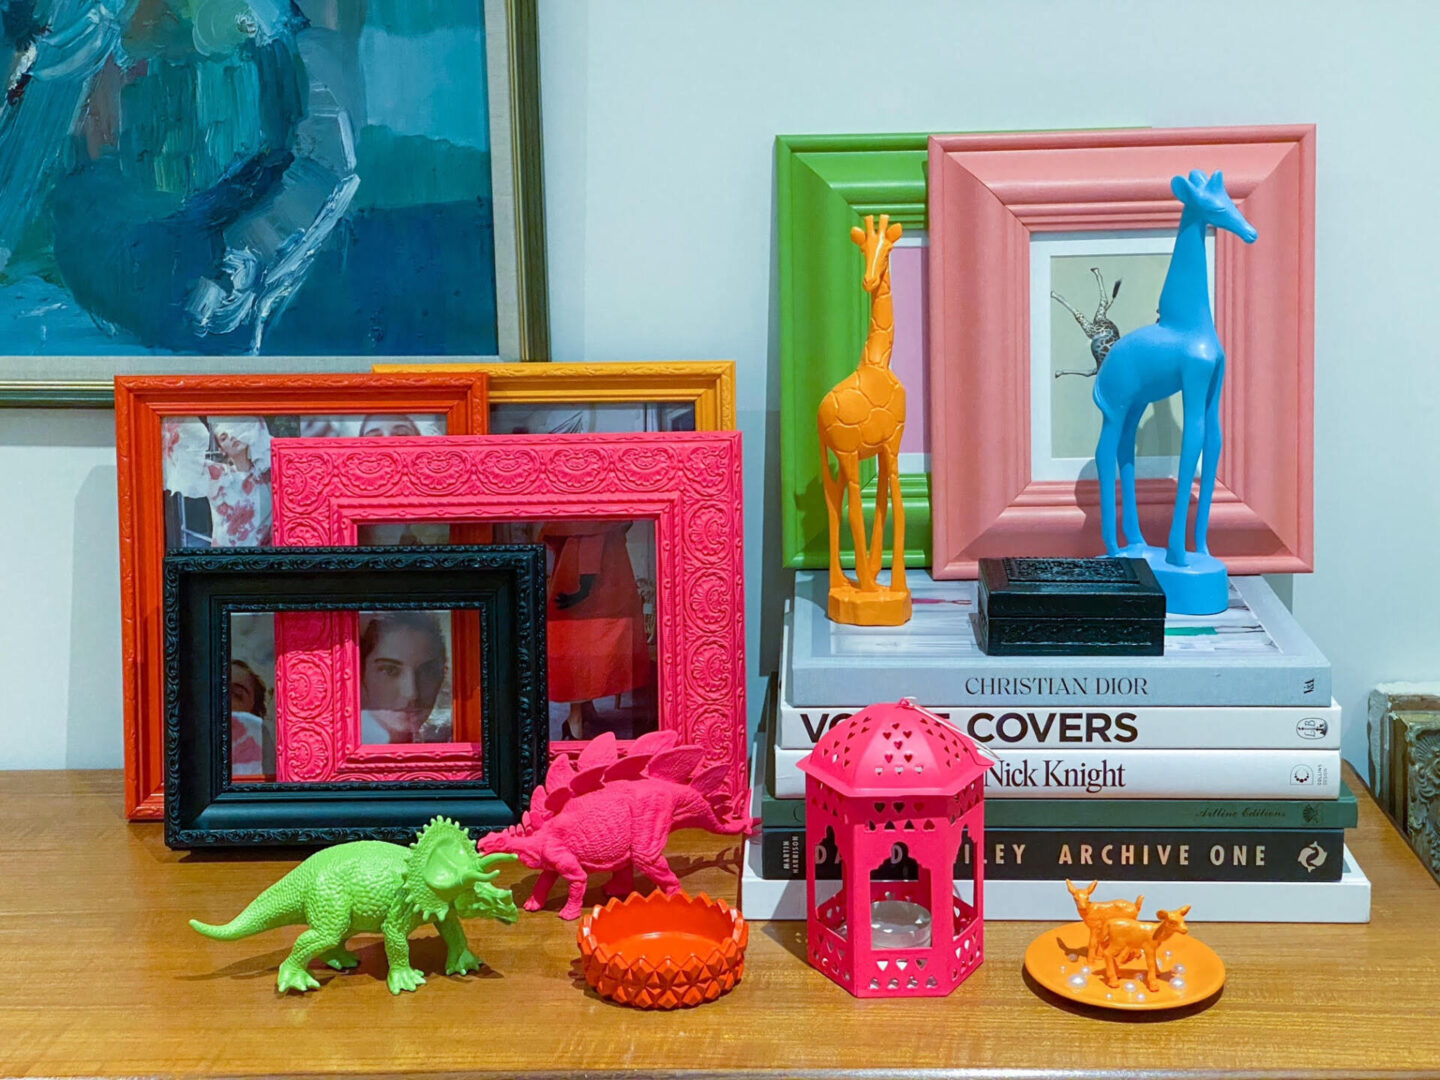 Not Lamb Home: Bold, kitsch upcycled homewares, vintage and decor